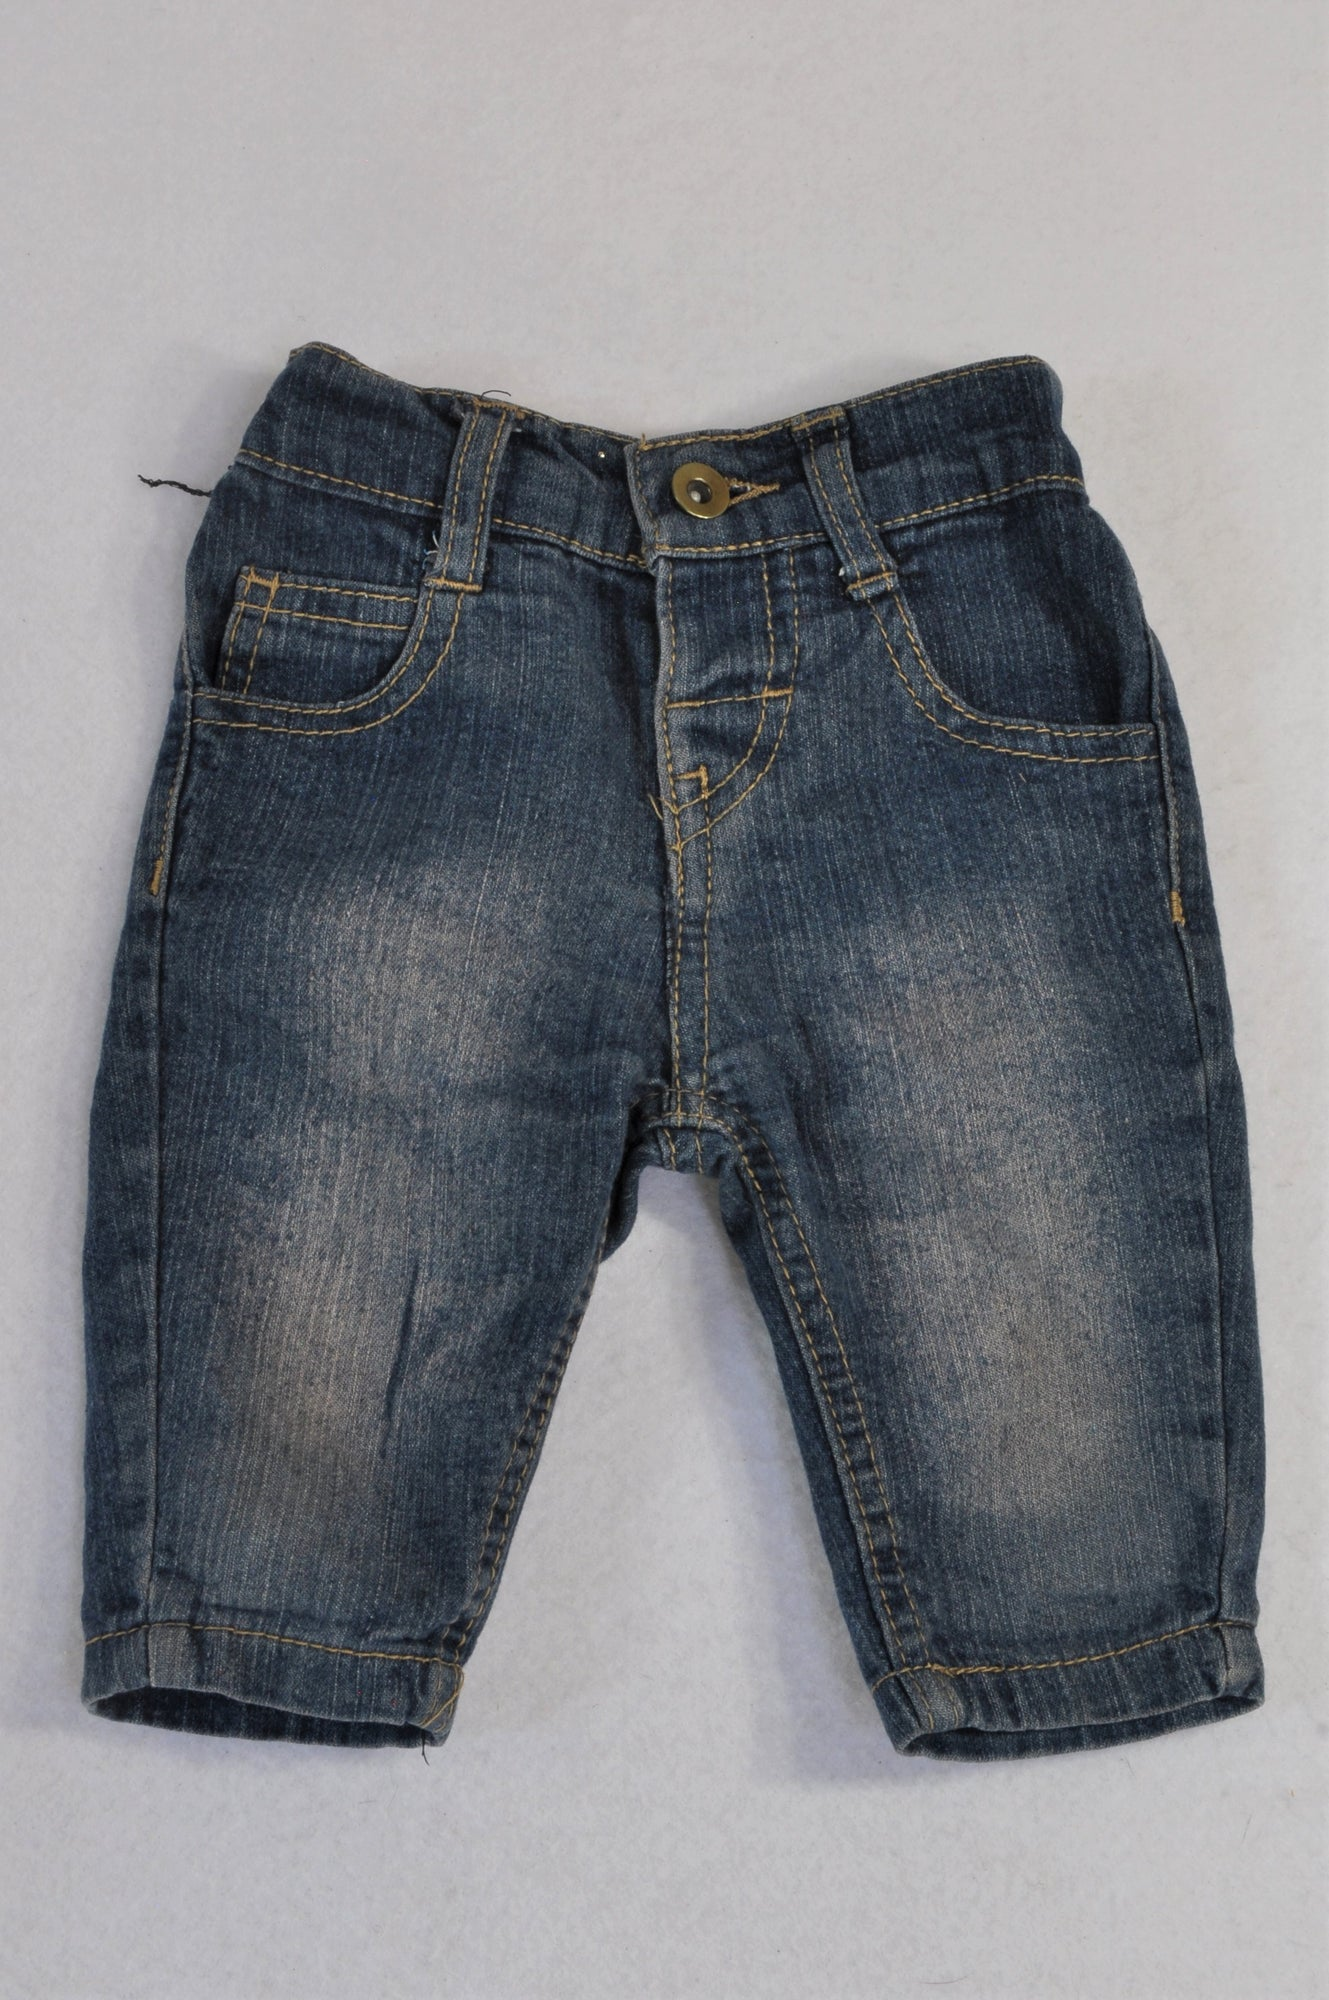 Jet Stone Washed Denim Jeans Boys 3-6 months